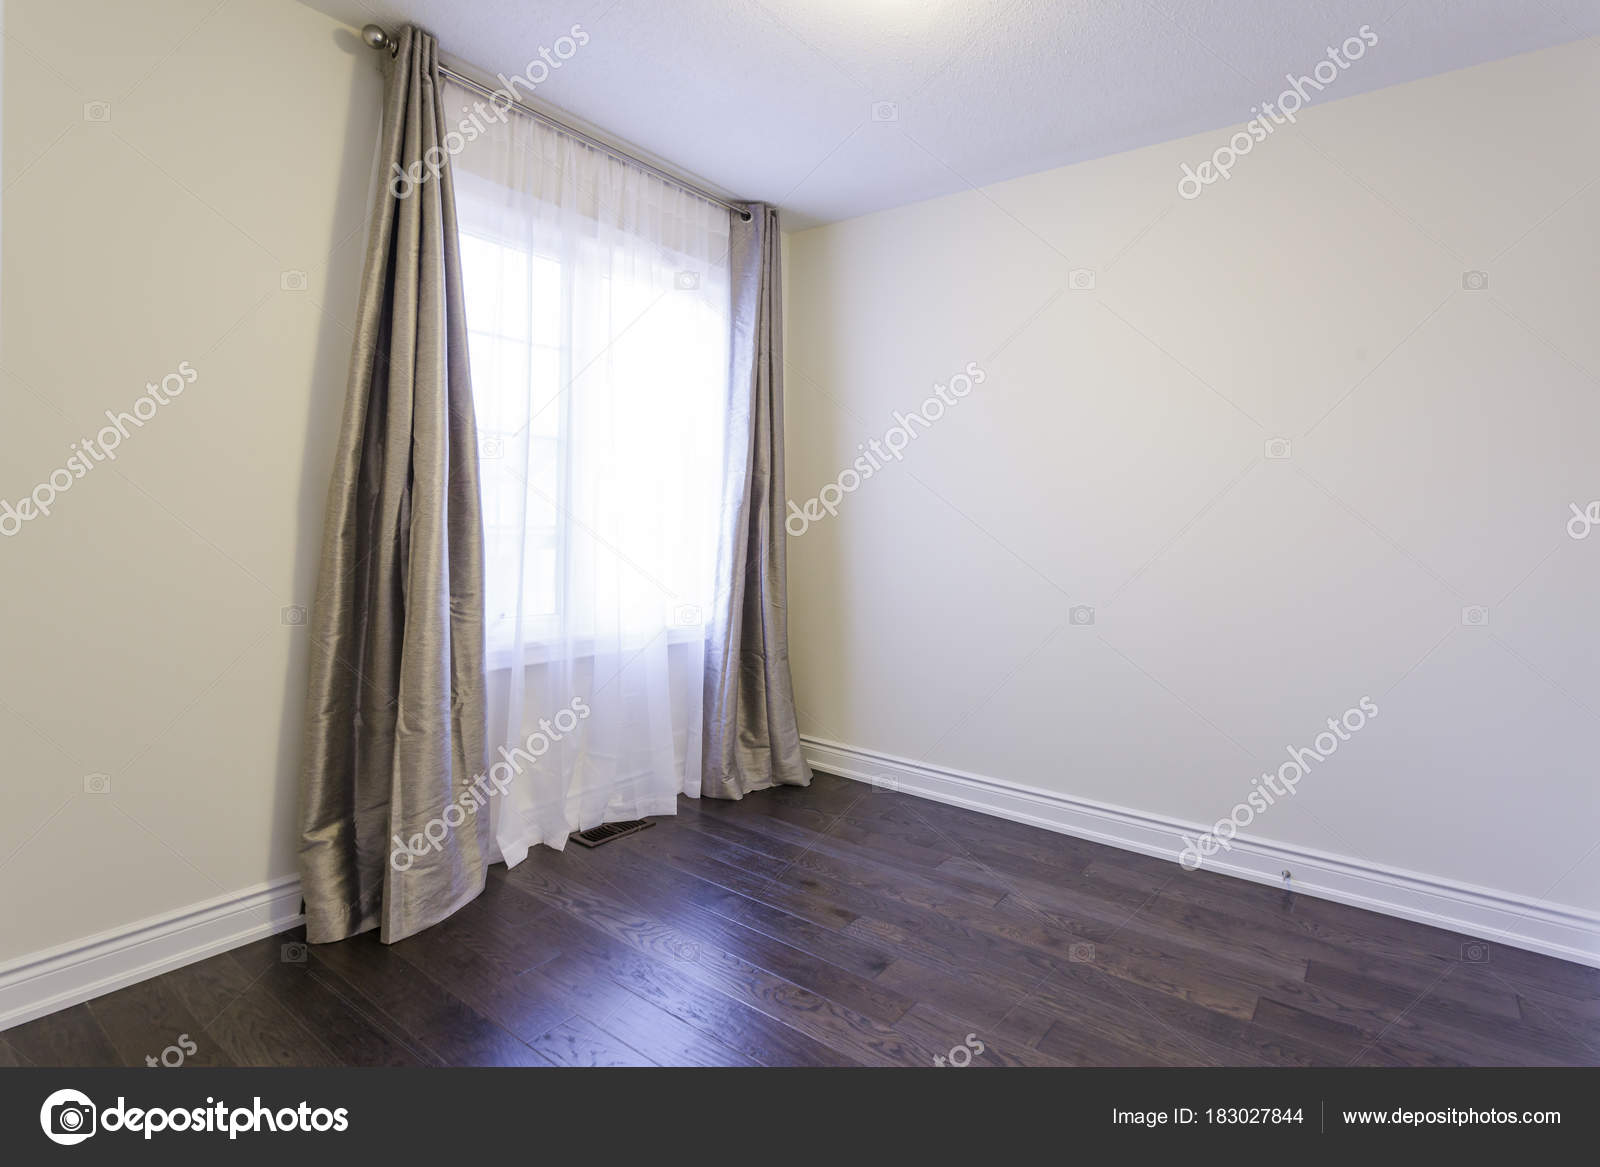 Empty Bedroom In A House Stock Photo C Sergey02 183027844